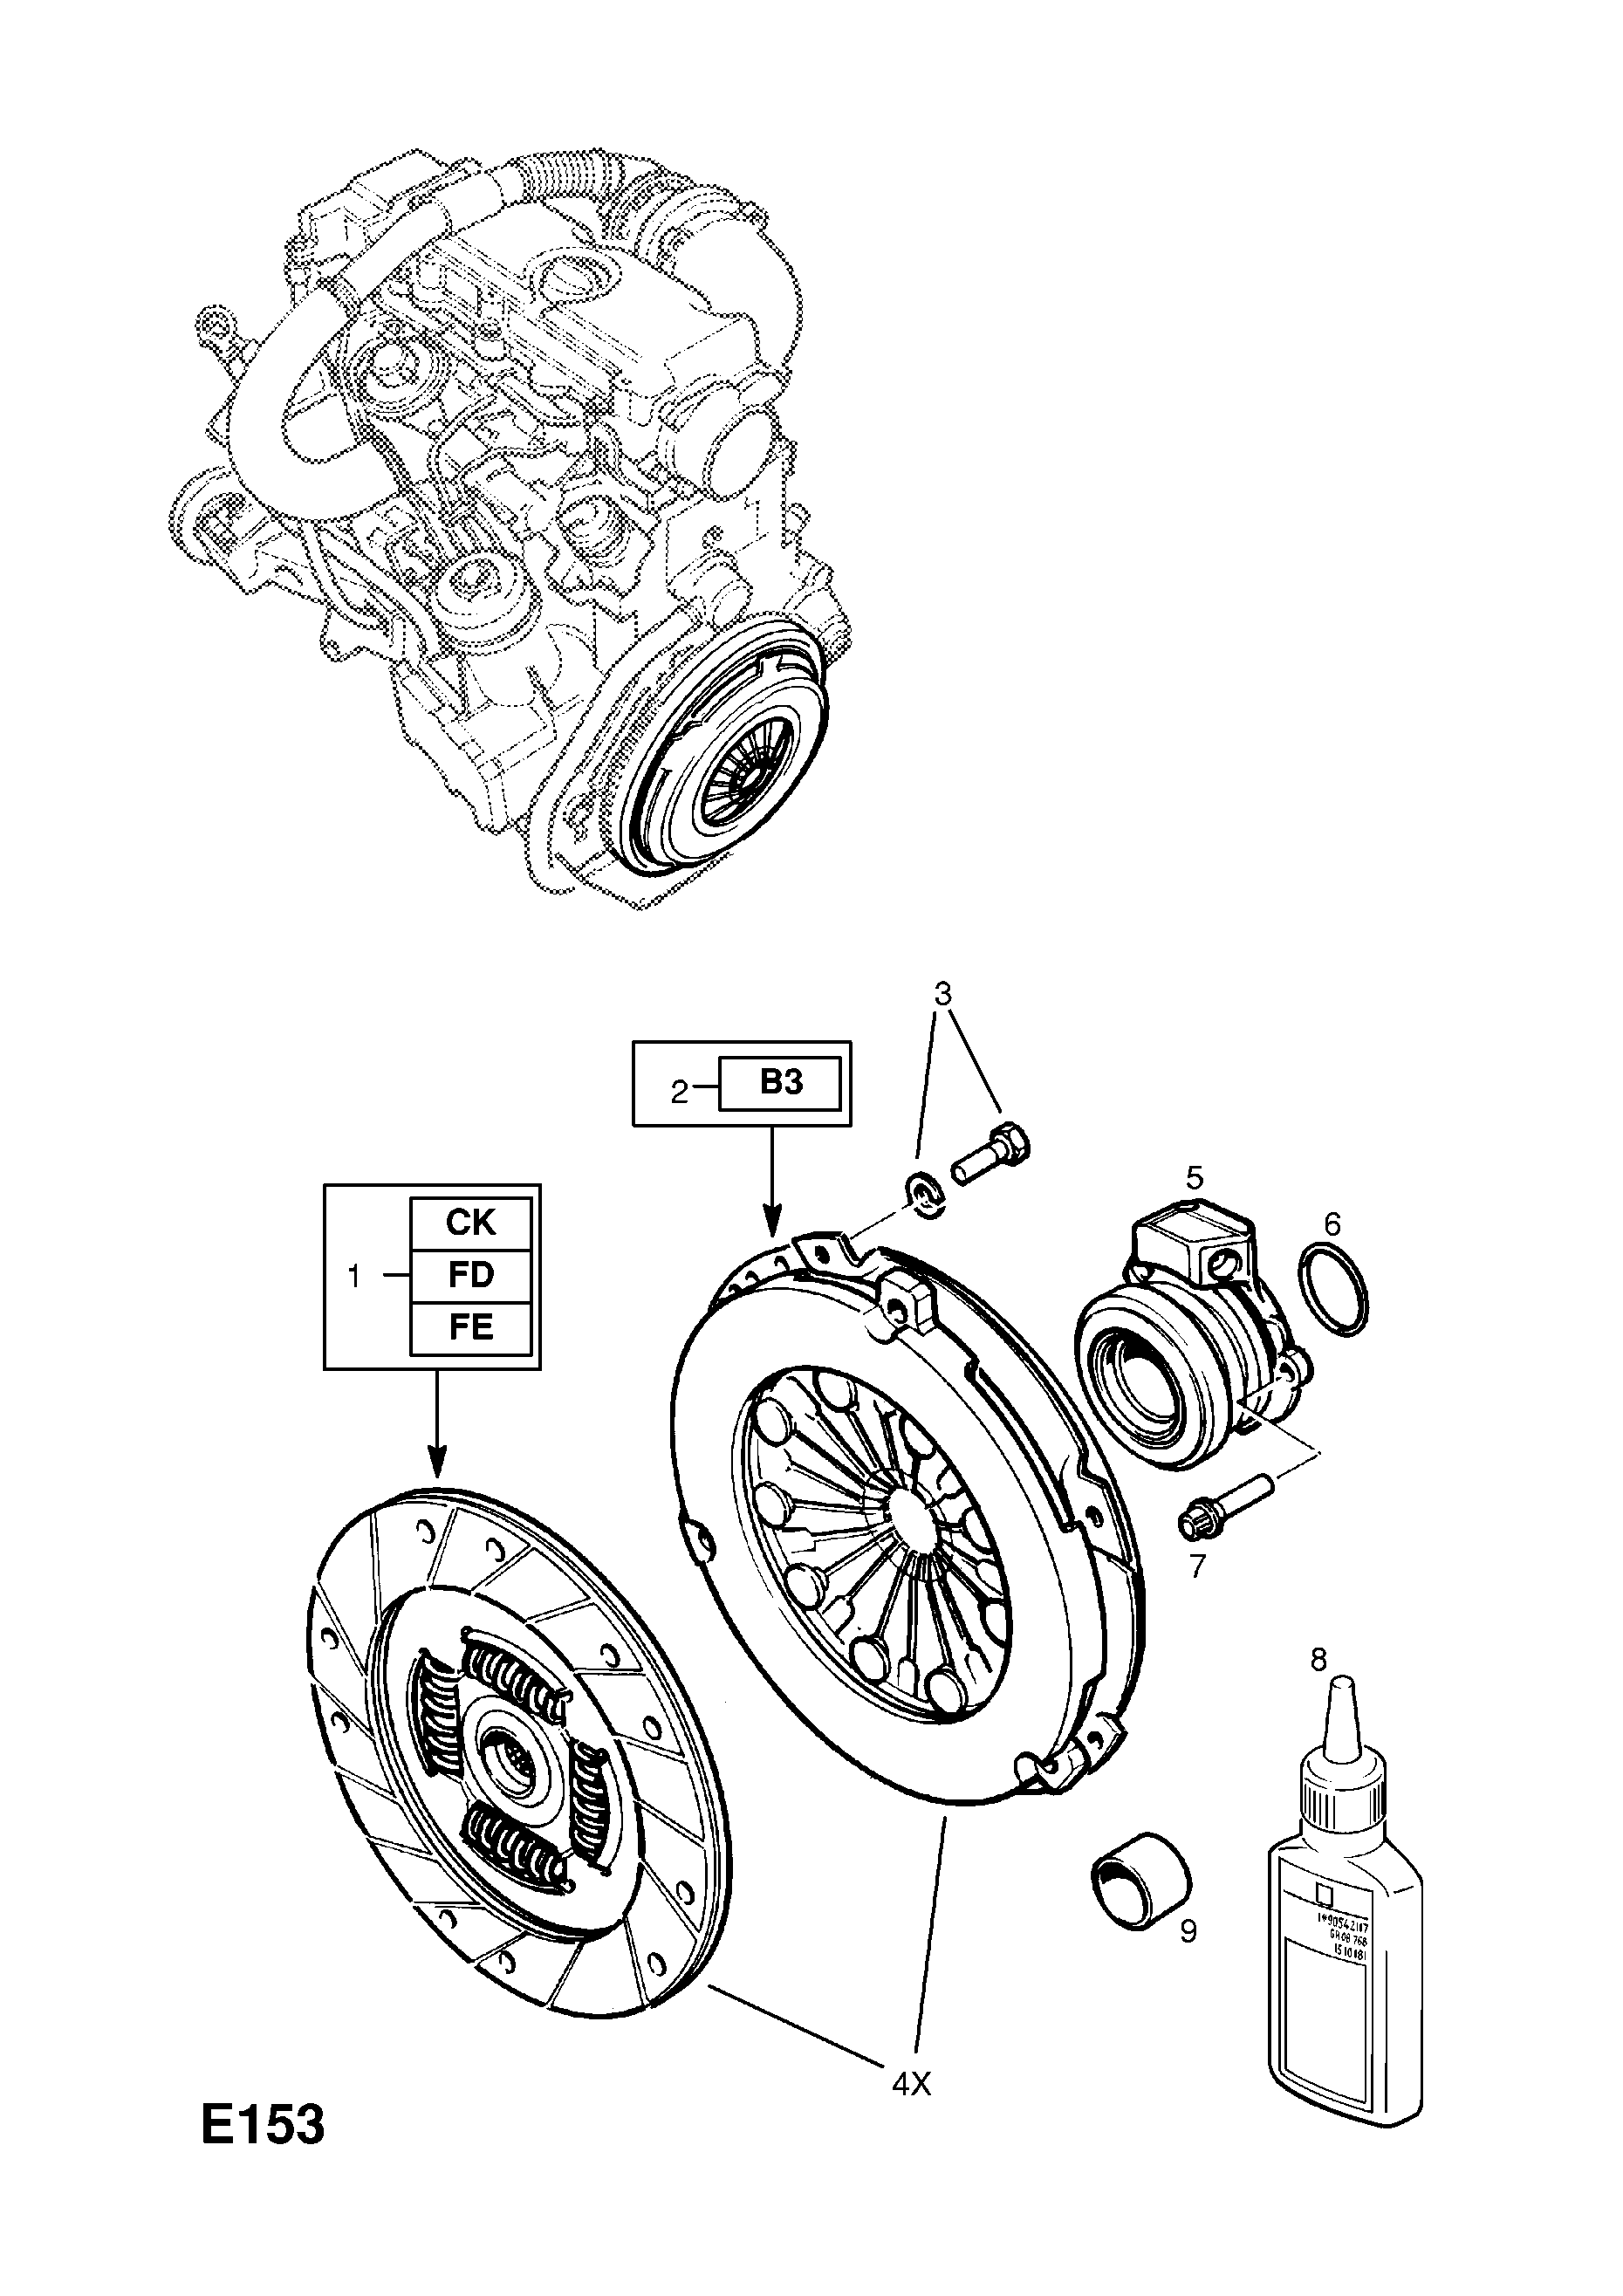 Vauxhall Vectra B 1996 2002 E Engine And Clutch 12 X20dtlld3 Opel Transmission Diagrams List Of Parts